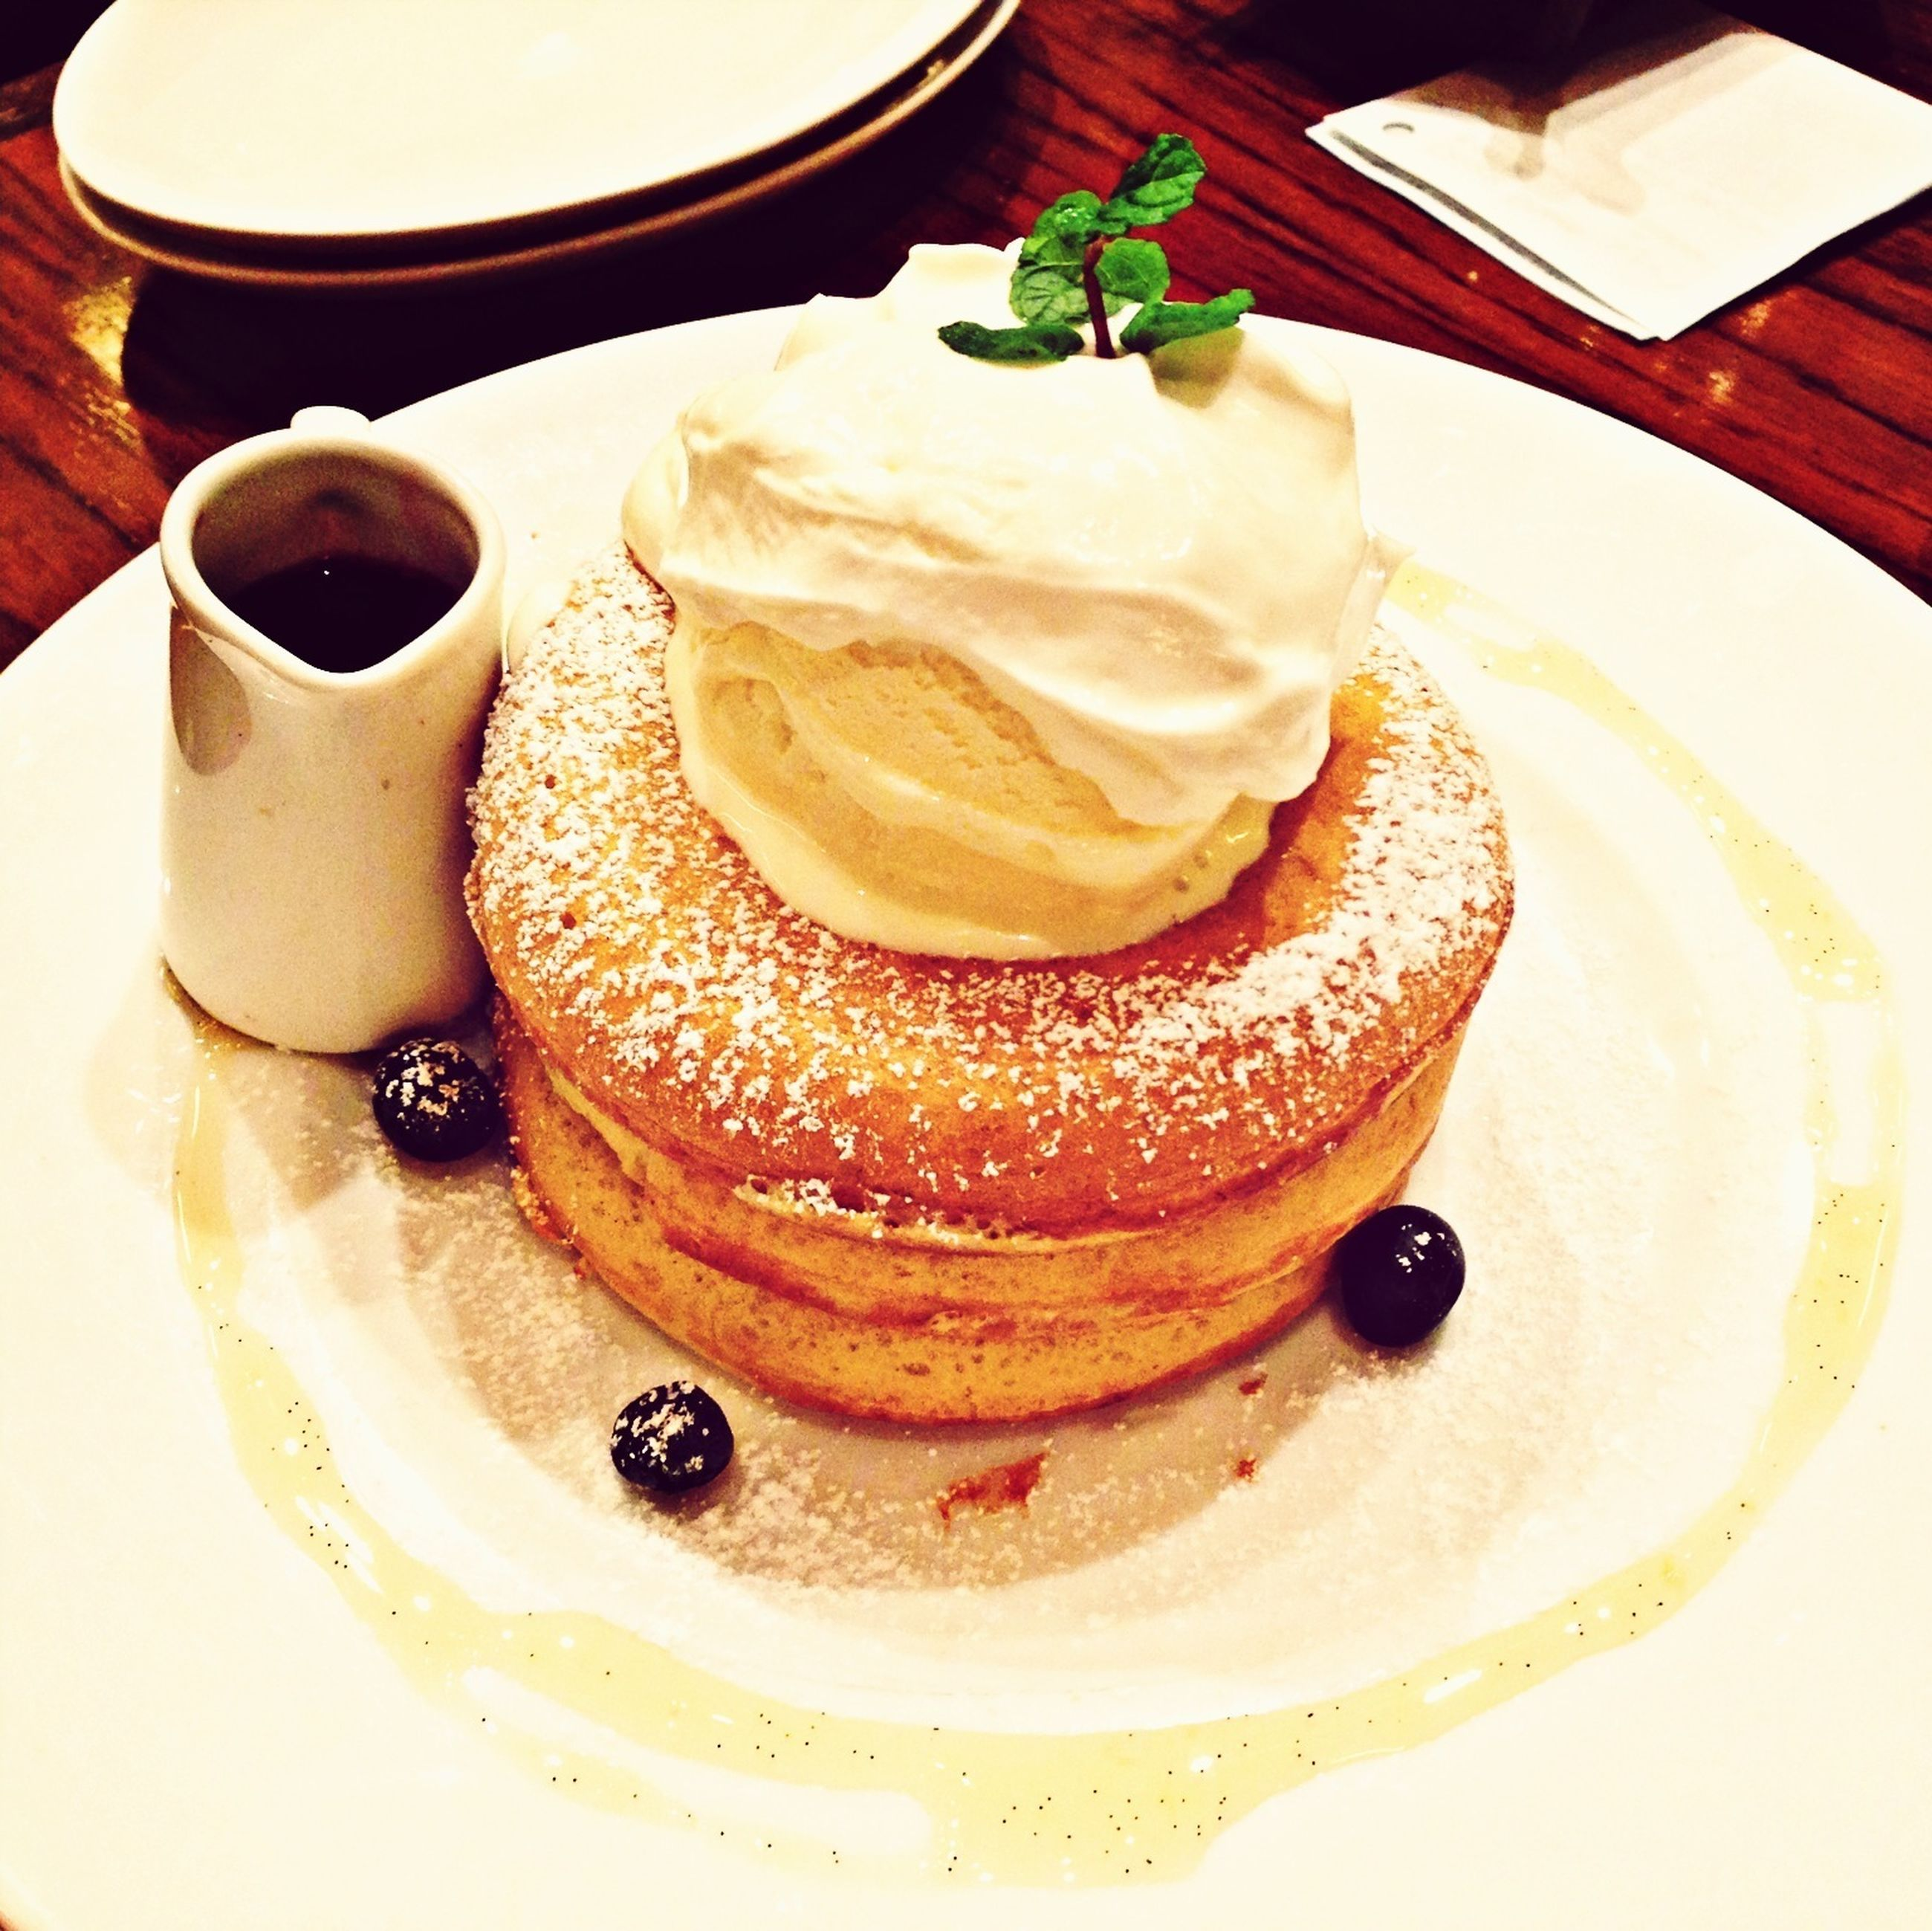 food and drink, food, indoors, sweet food, freshness, ready-to-eat, plate, dessert, still life, indulgence, table, unhealthy eating, cake, serving size, high angle view, temptation, close-up, breakfast, chocolate, refreshment